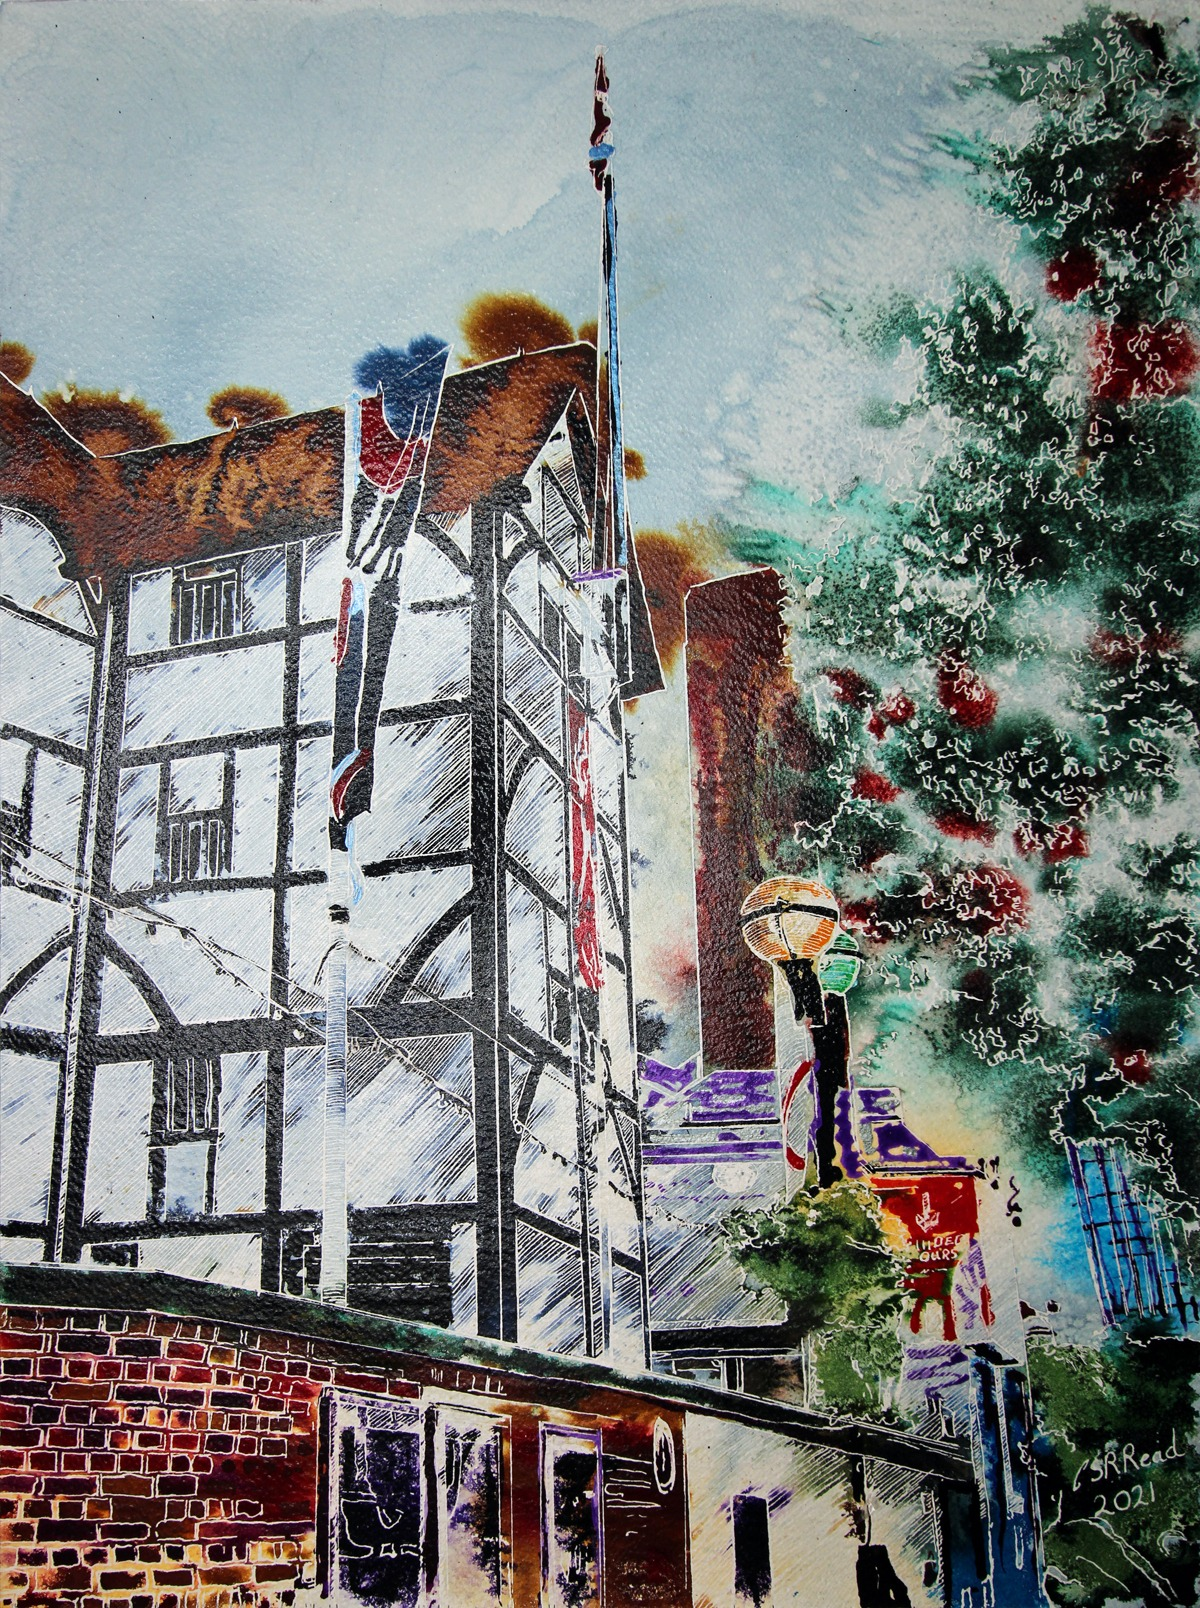 Globe Theatre - ©2021- Cathy Read - 61 x 45.7 x 2.3 cm, Watercolour and ink